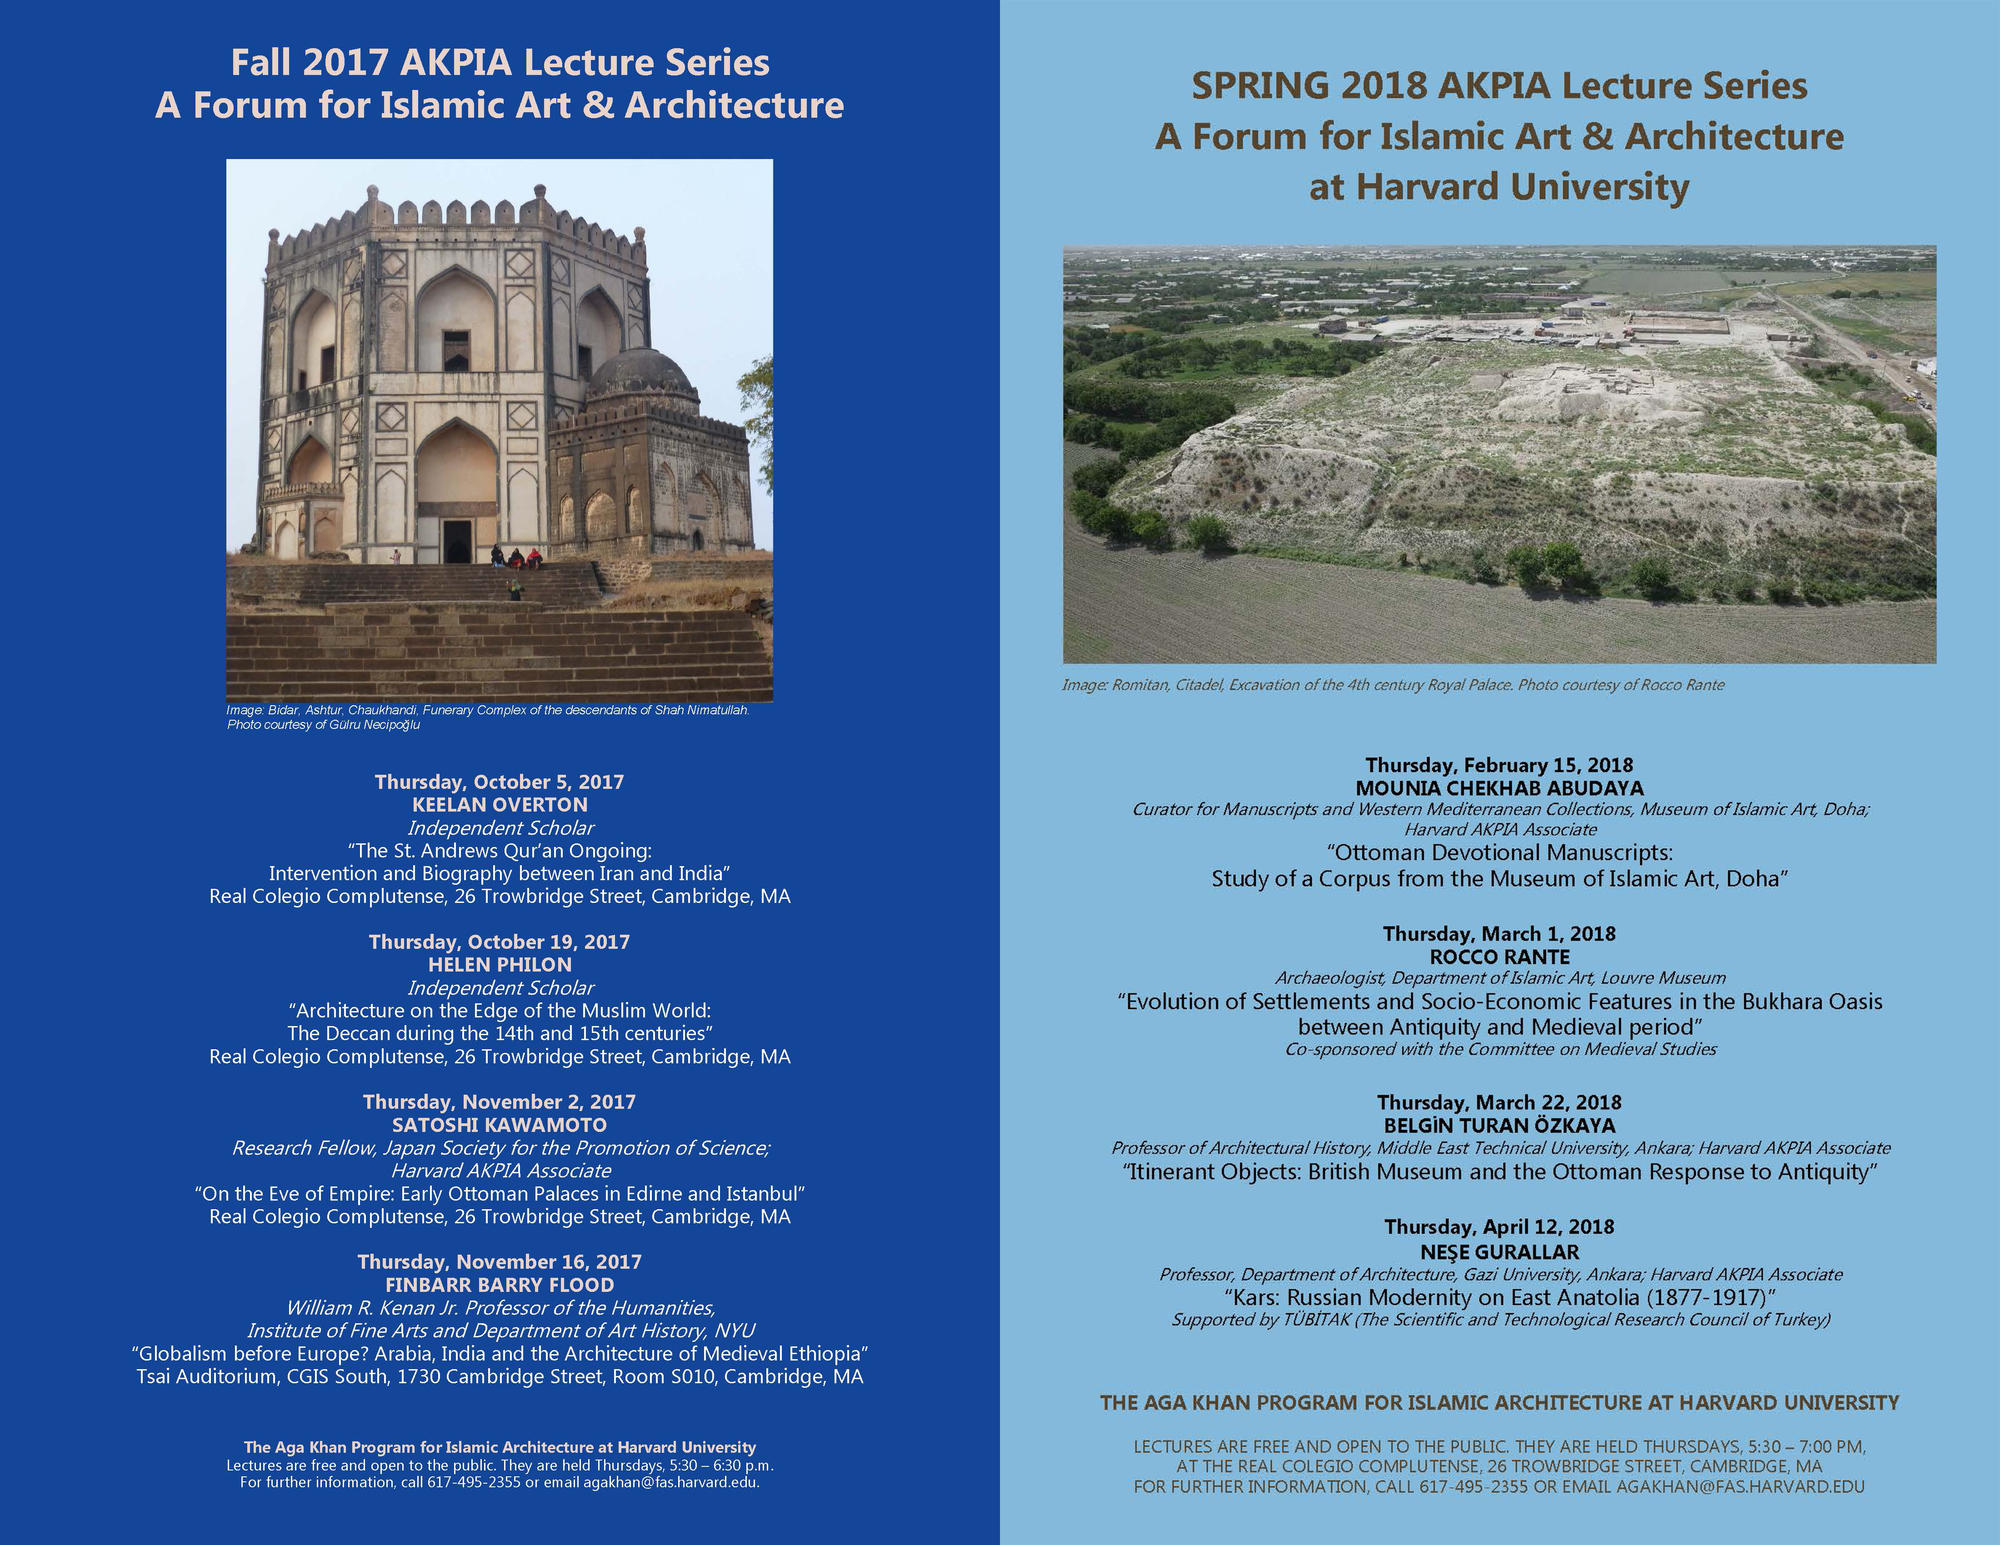 AKPIA 2017-2018 Lectures